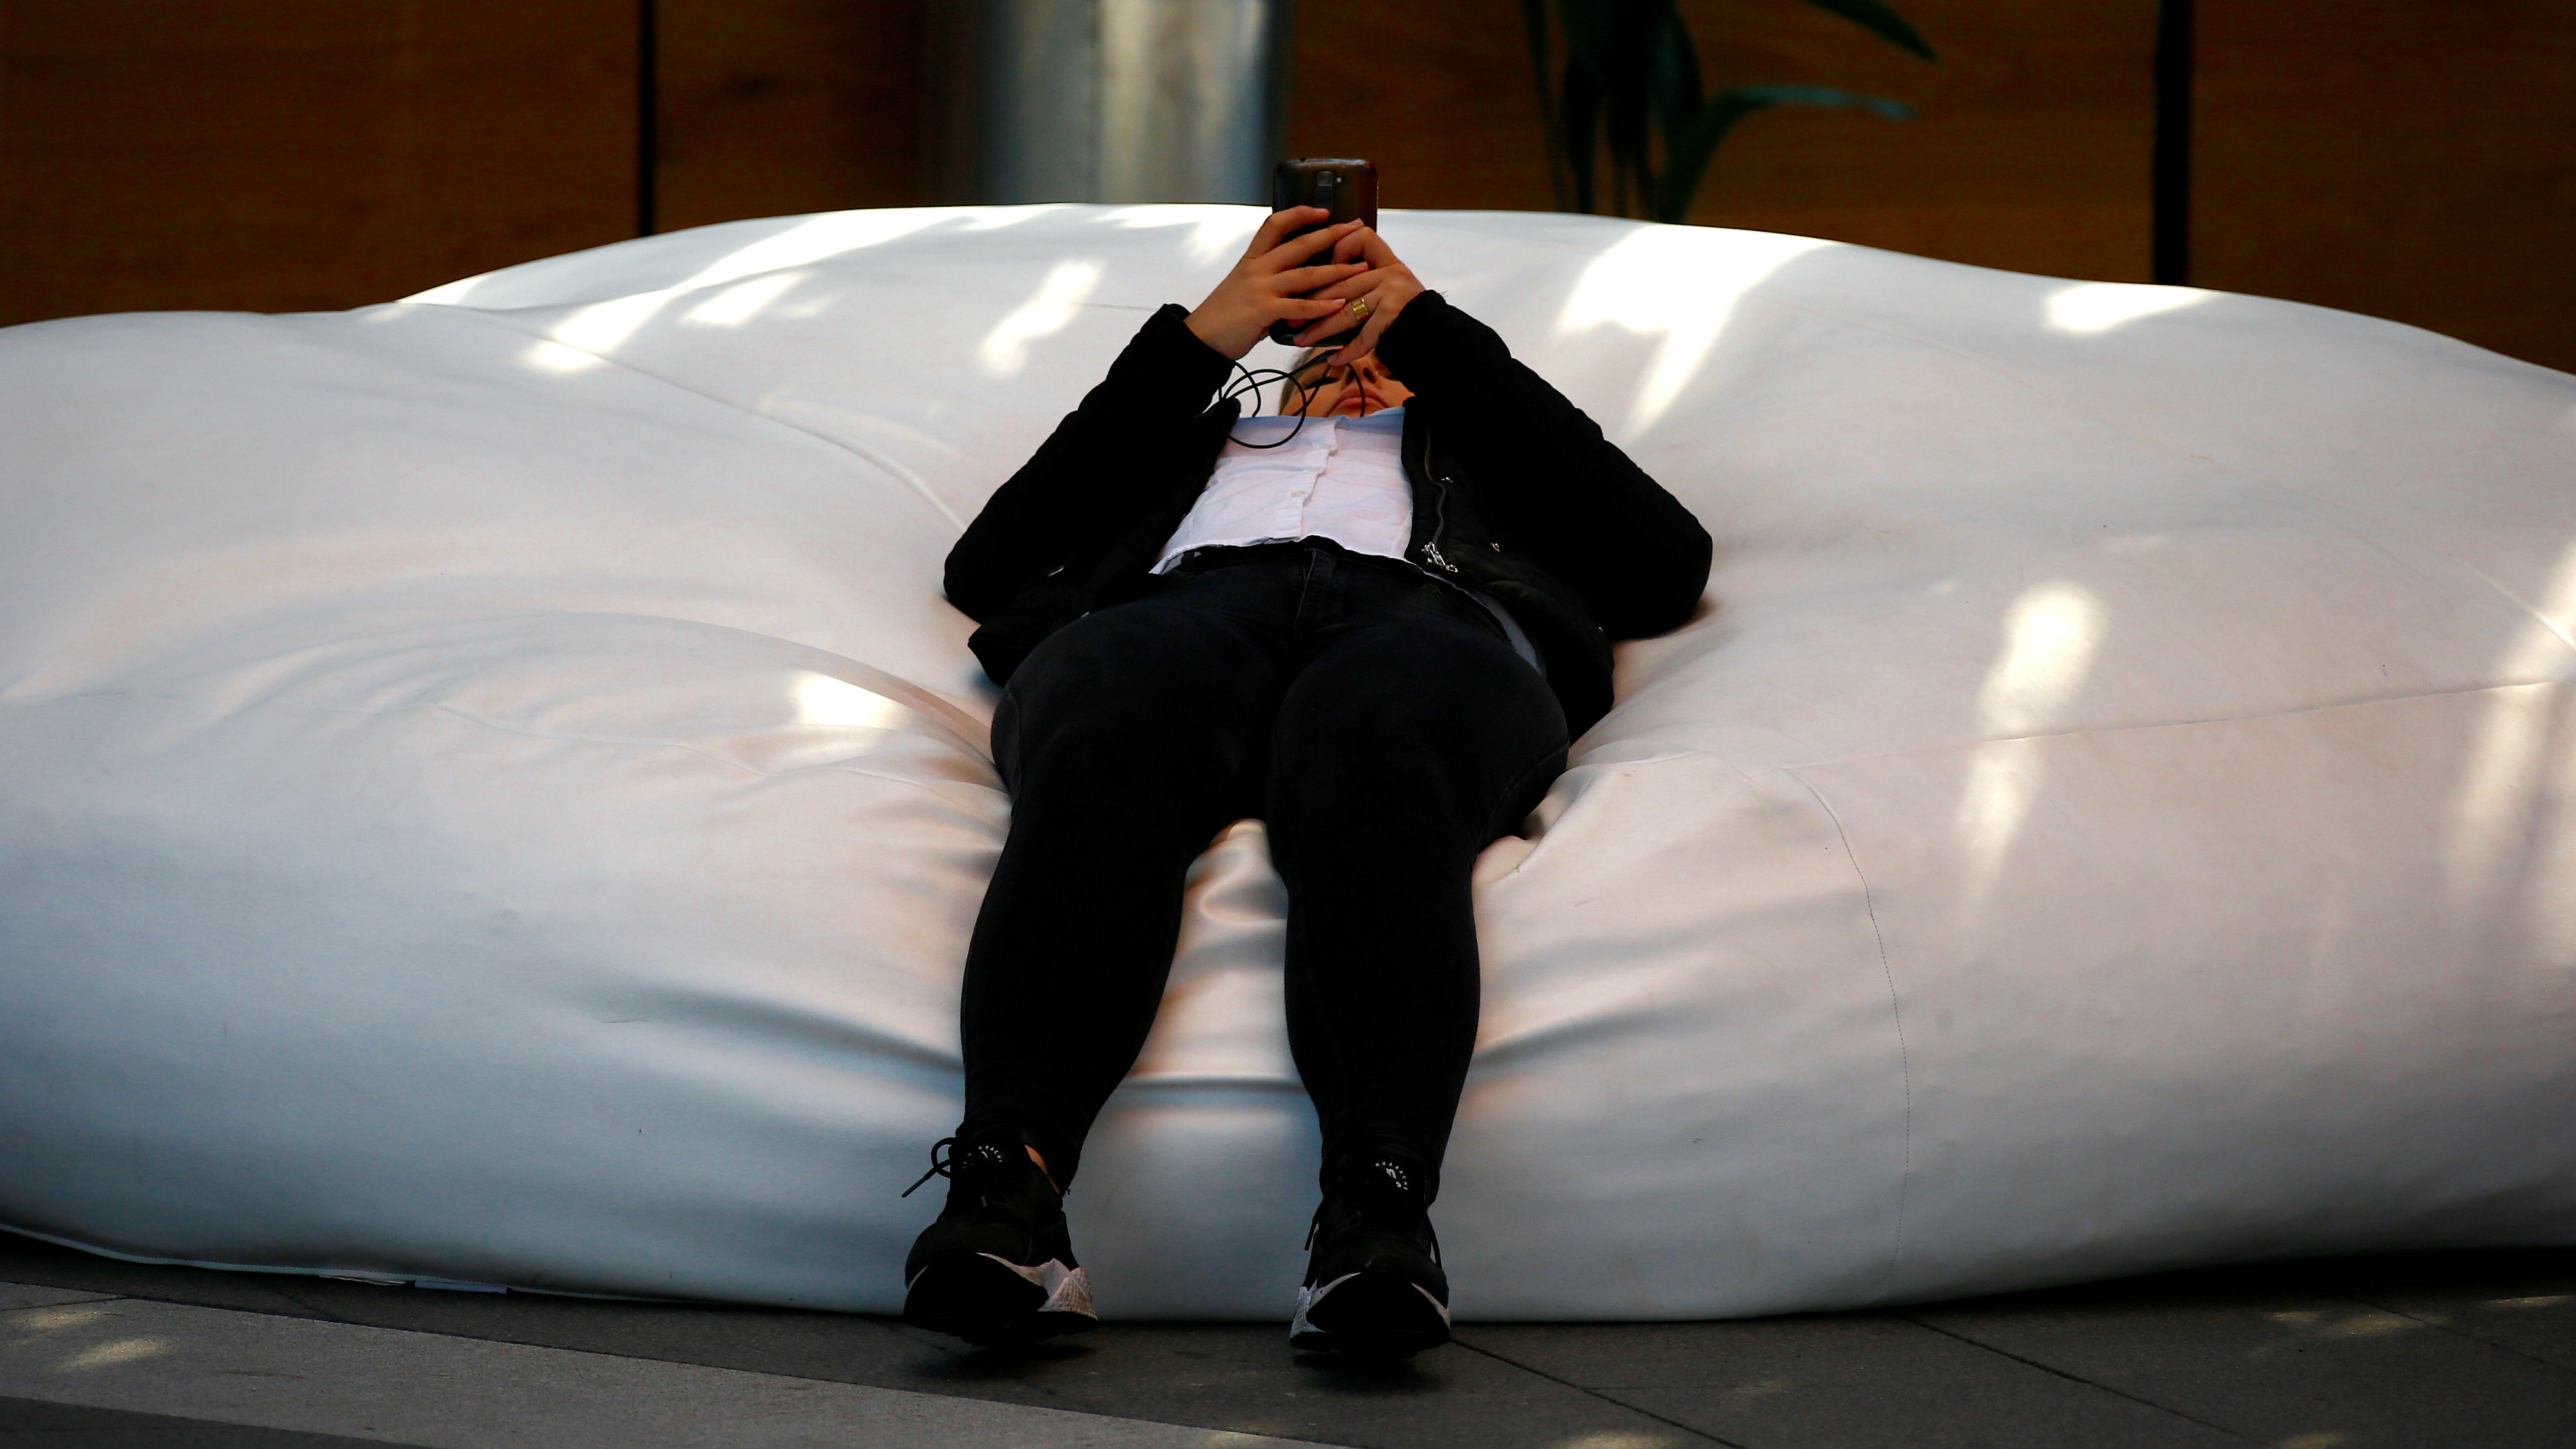 Here's why a period in a text message makes you sound angry — Quartz